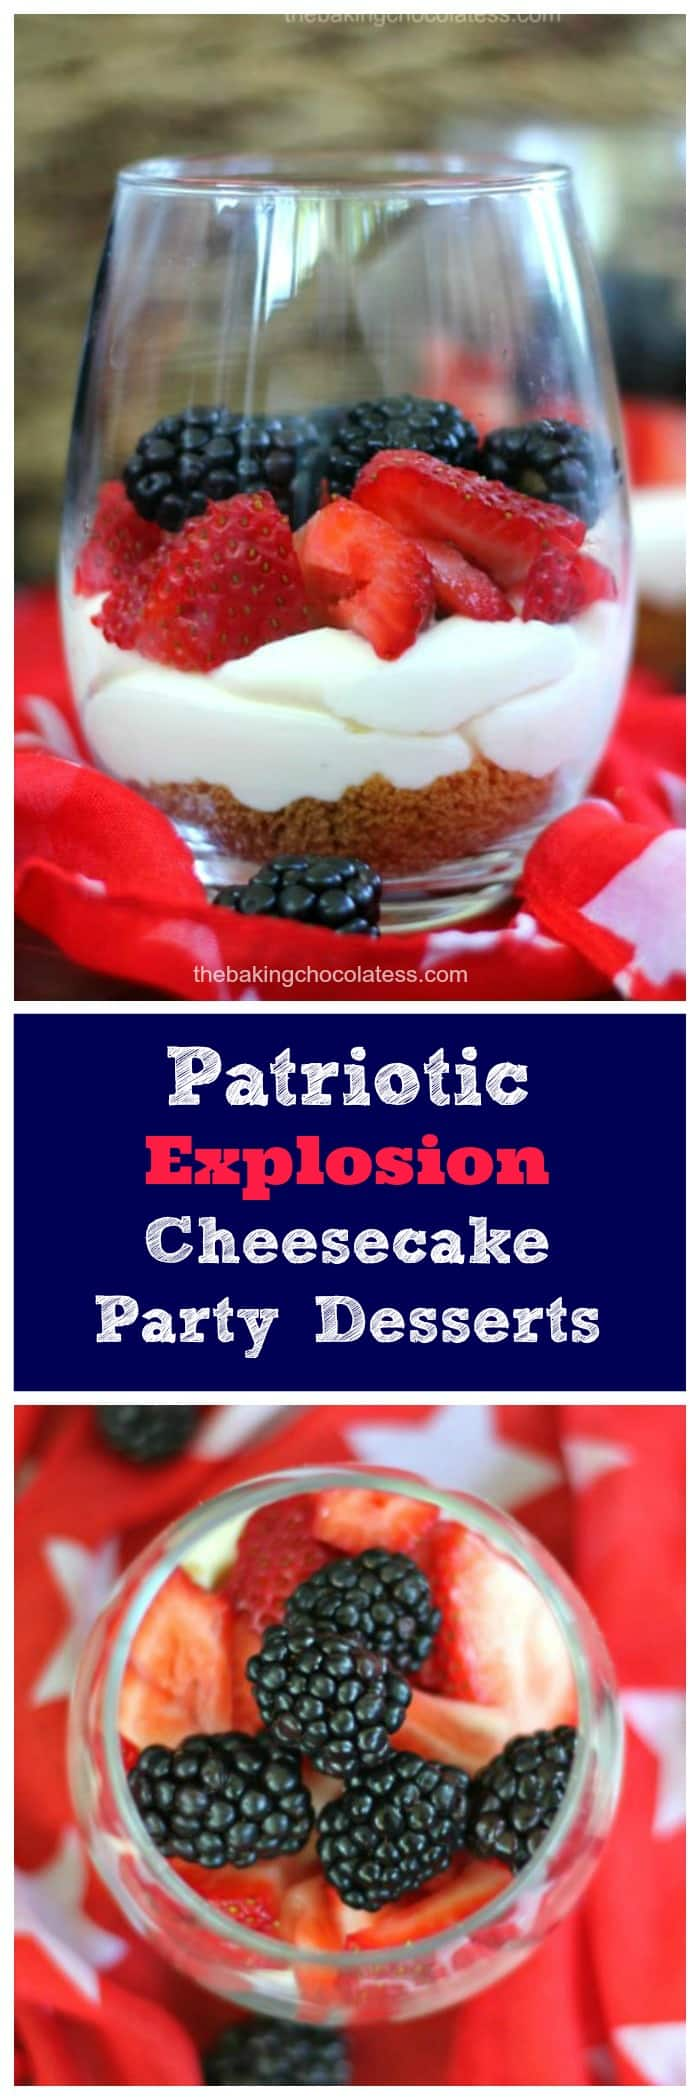 Patriotic Berry Explosion Cheesecake Party Desserts